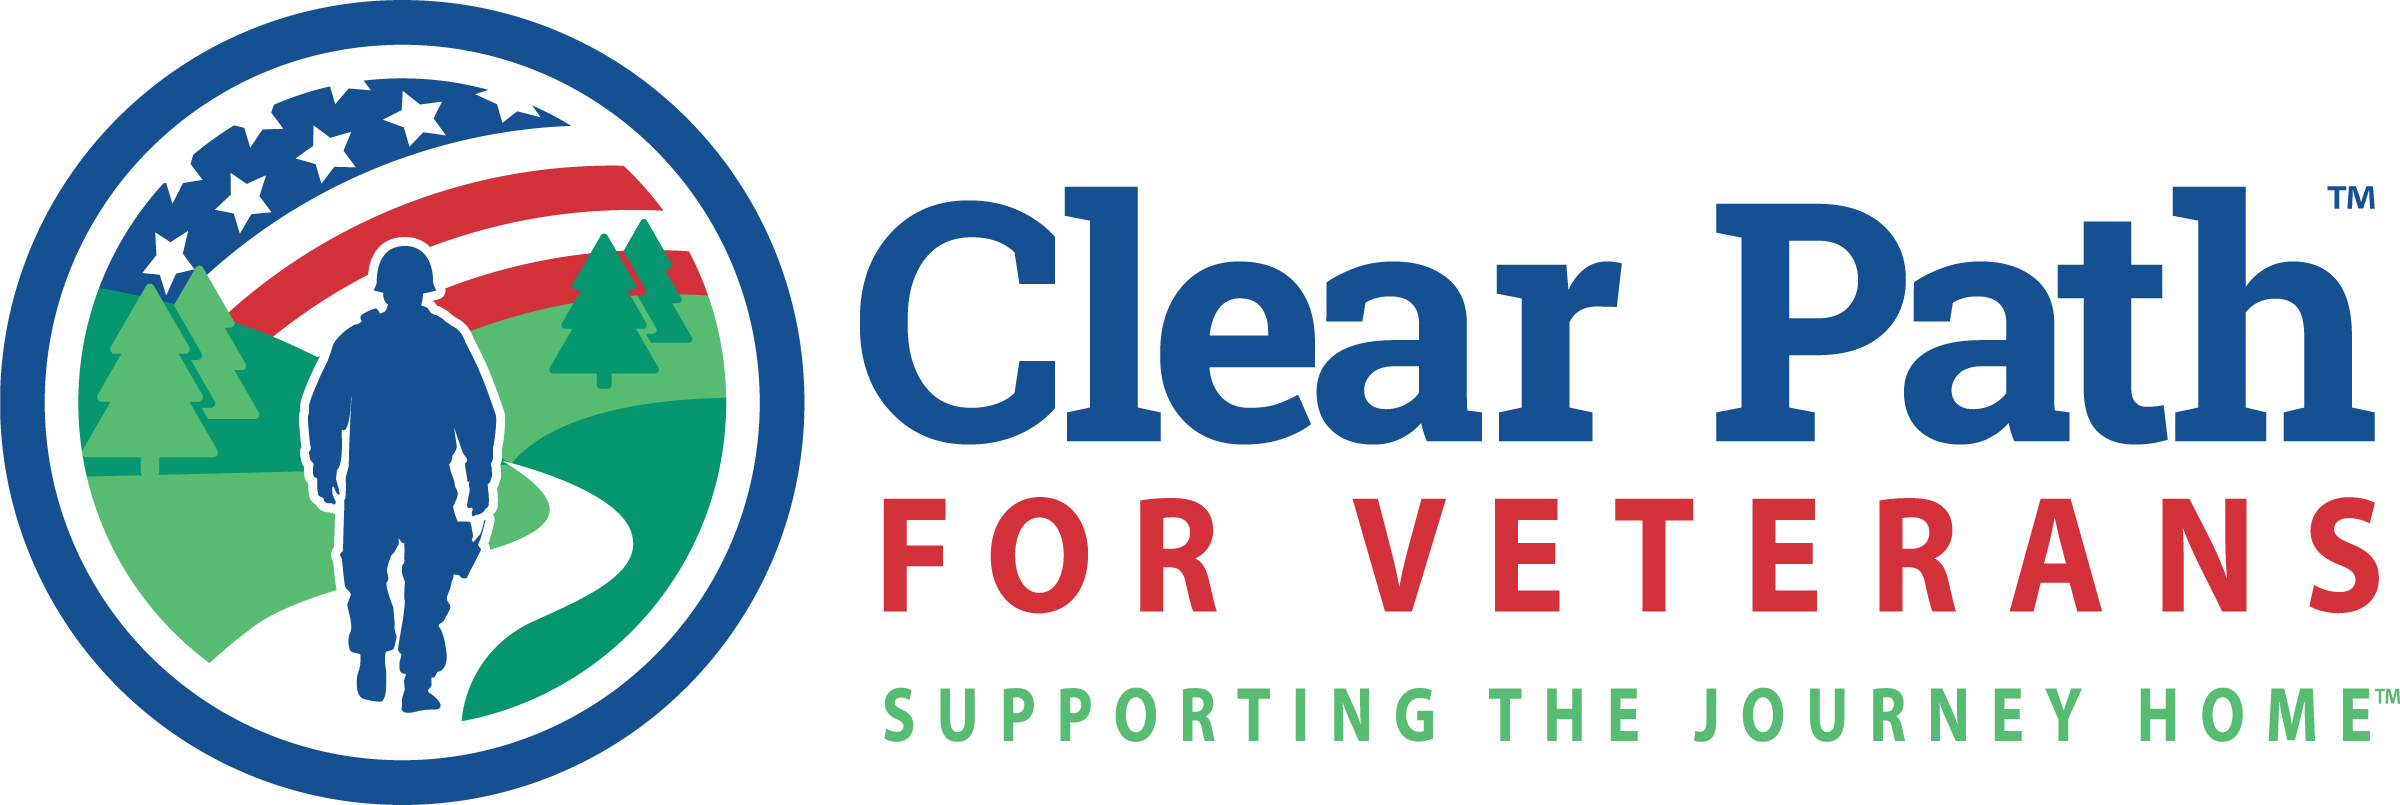 2018 CLEAR PATH FOR VETERANS NEW ENGLAND LOGO - GB.jpg